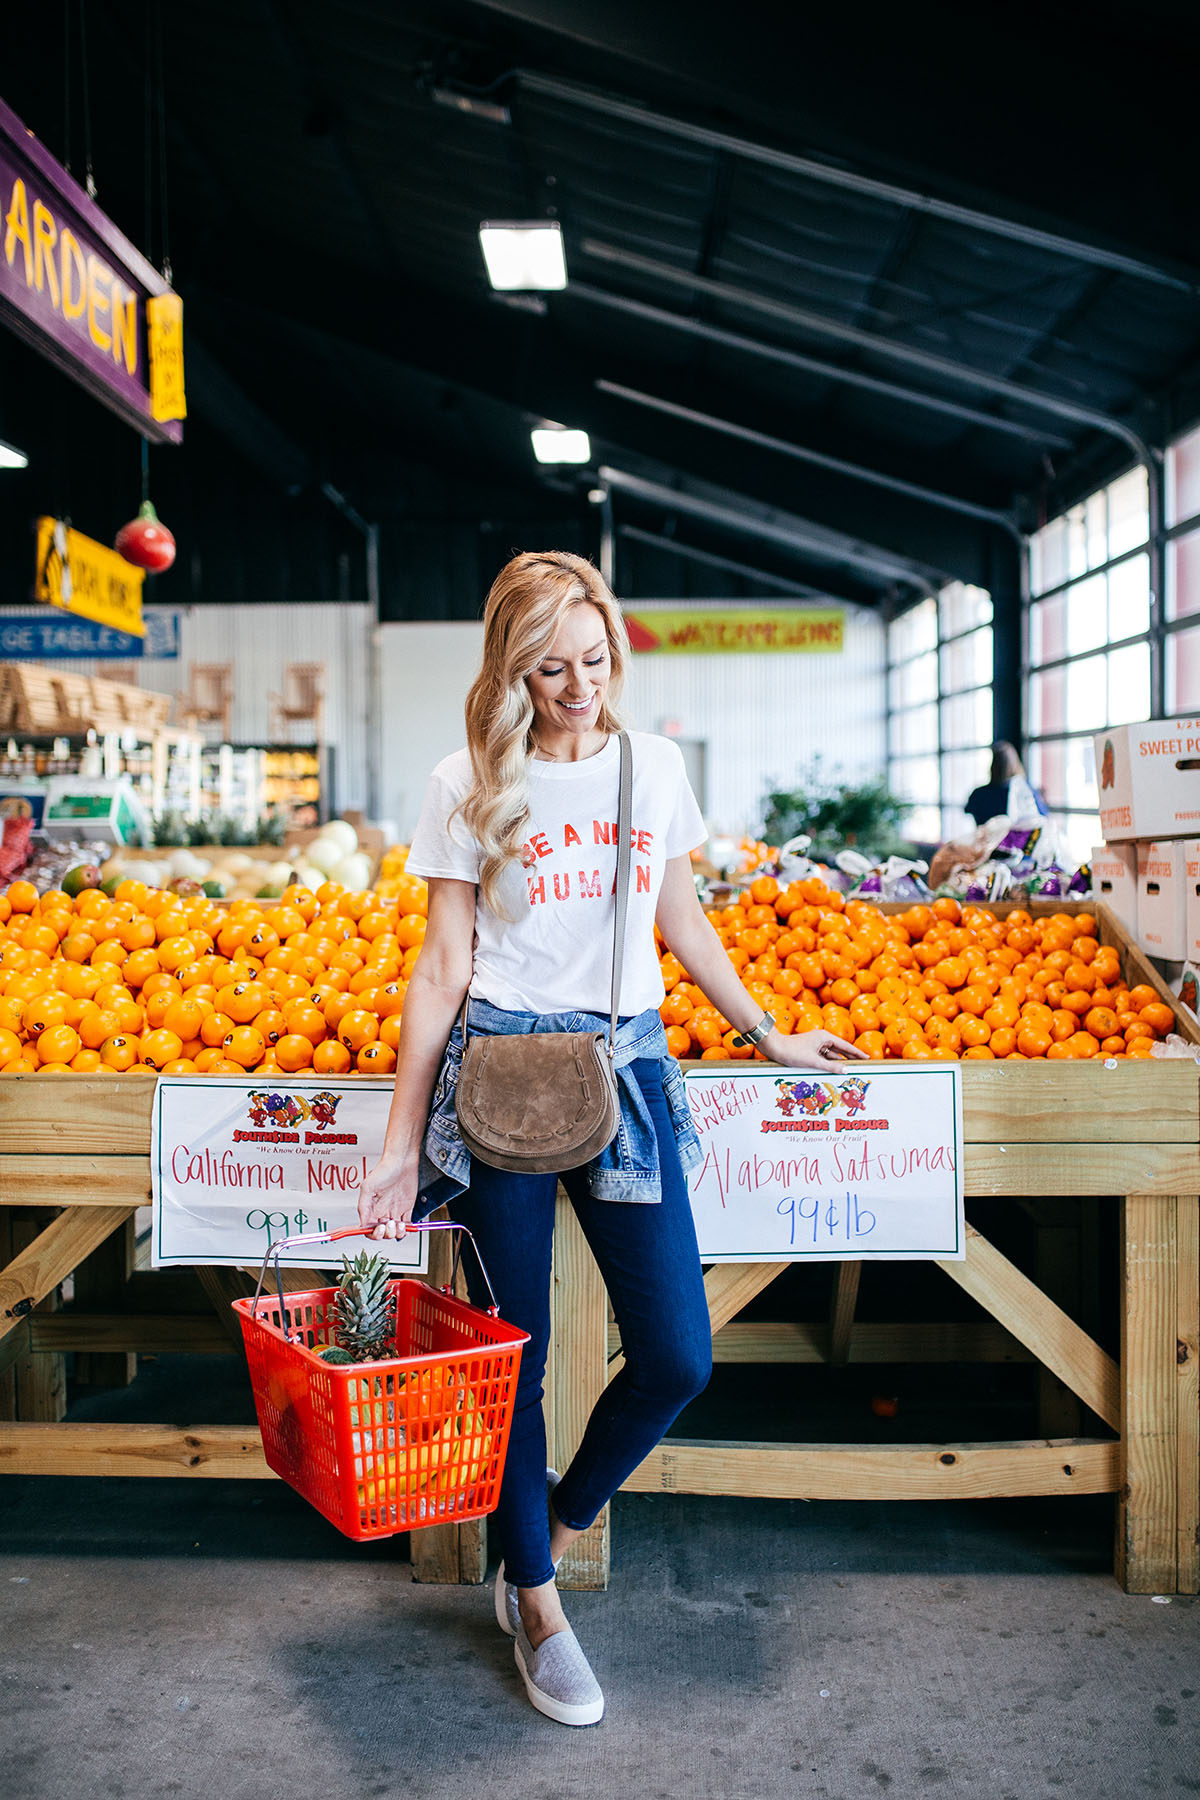 Healthy Alternatives on My Grocery List | Clean Eating Grocery List